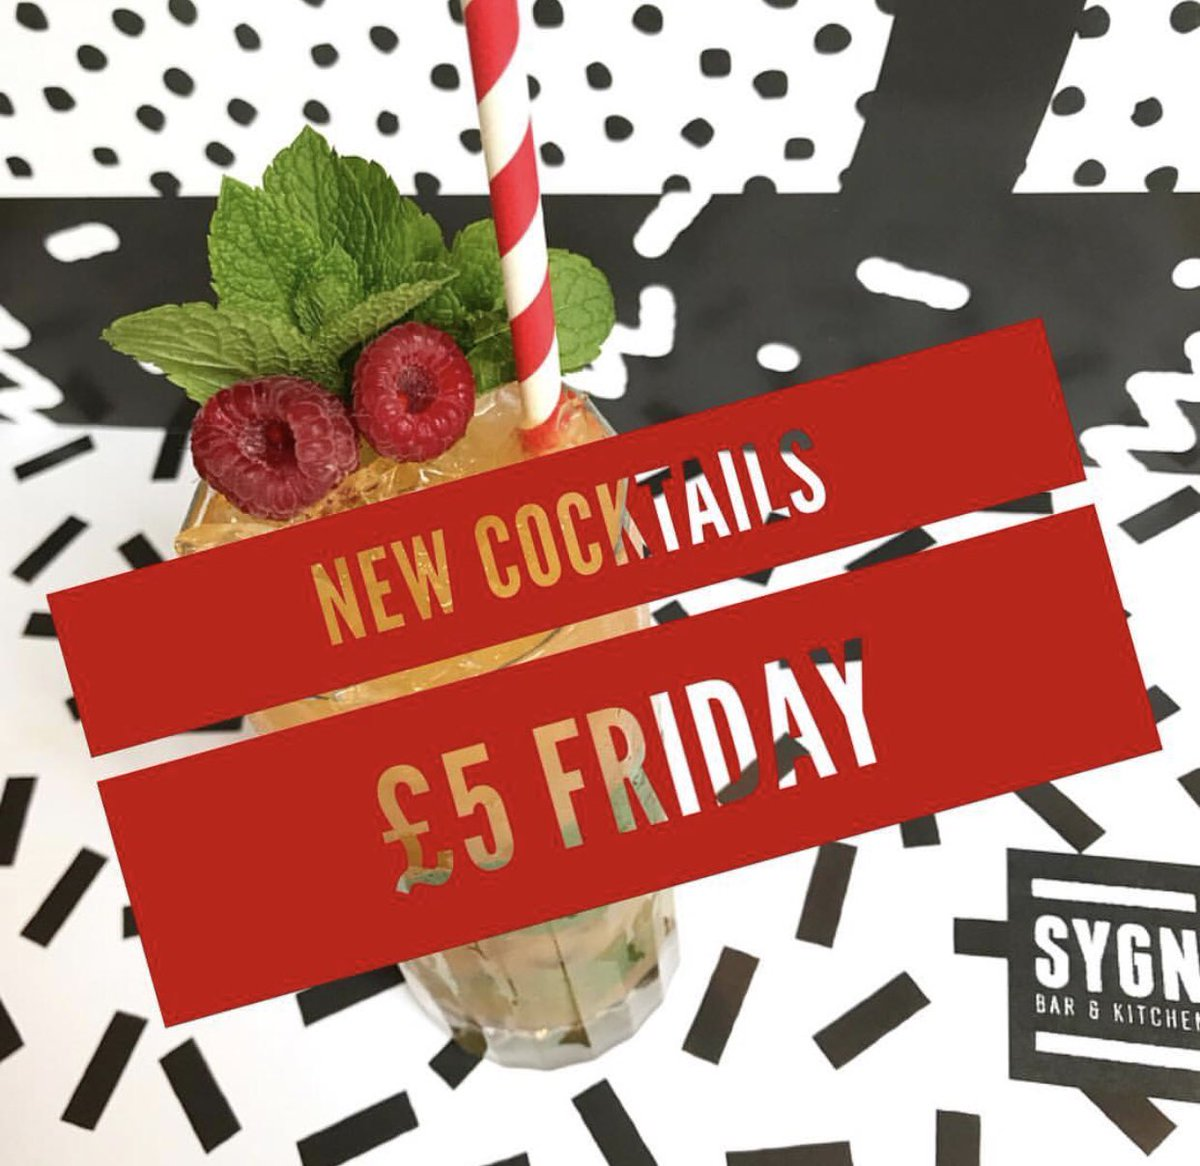 #funfriday   Sygn Bar have launched their new cocktail list - and it's £5 Friday 🍸 Don't miss out! Plus if you pre-book your table you get 50% off your food bill! @sygnbarsays   #hiddengems #takeacloserlook #edinburghfood #thisisedinburgh #edinburgh